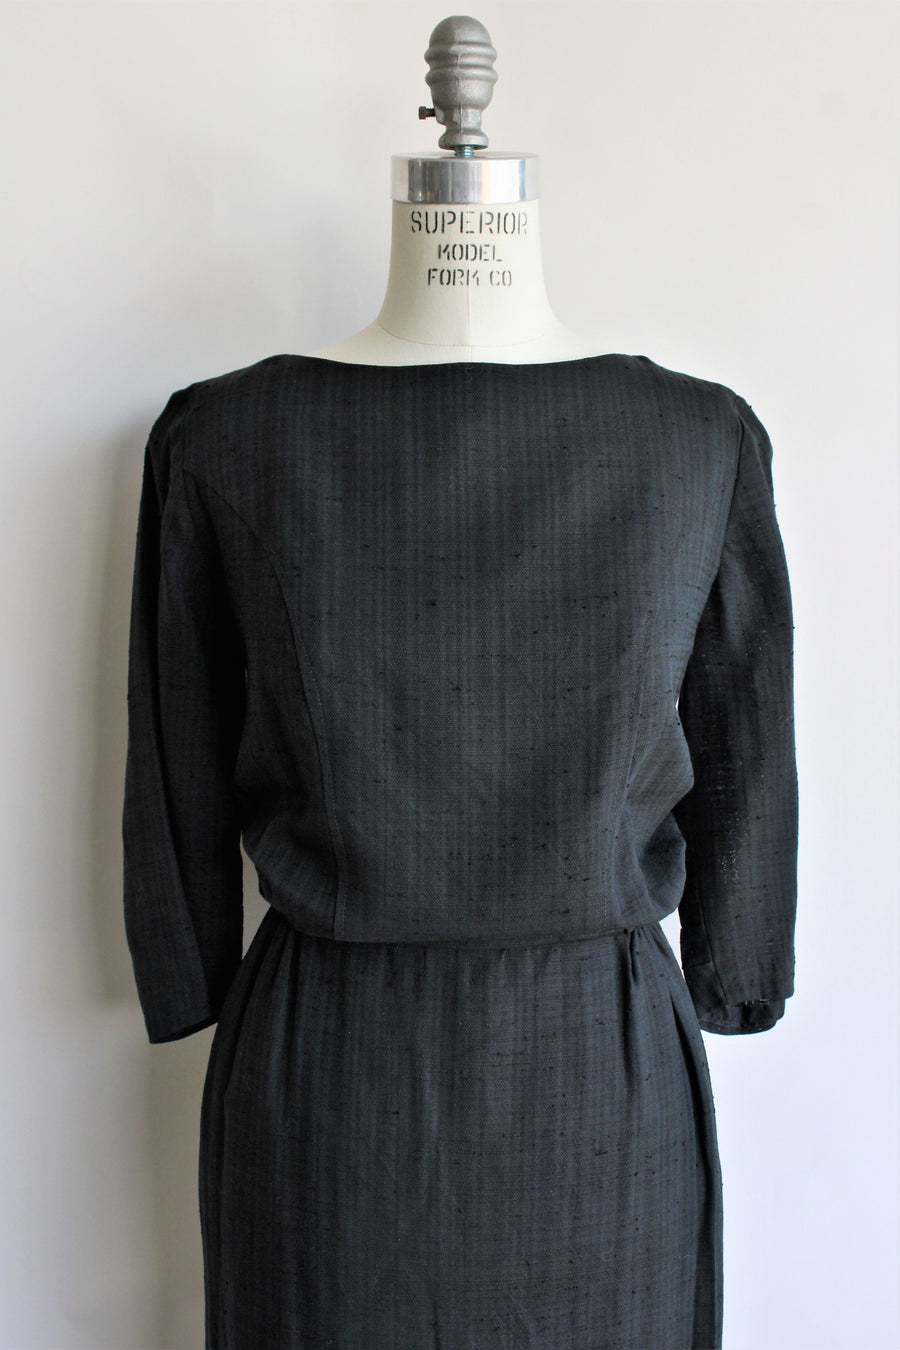 Vintage 1960s Black Sheath Dress with Button Back